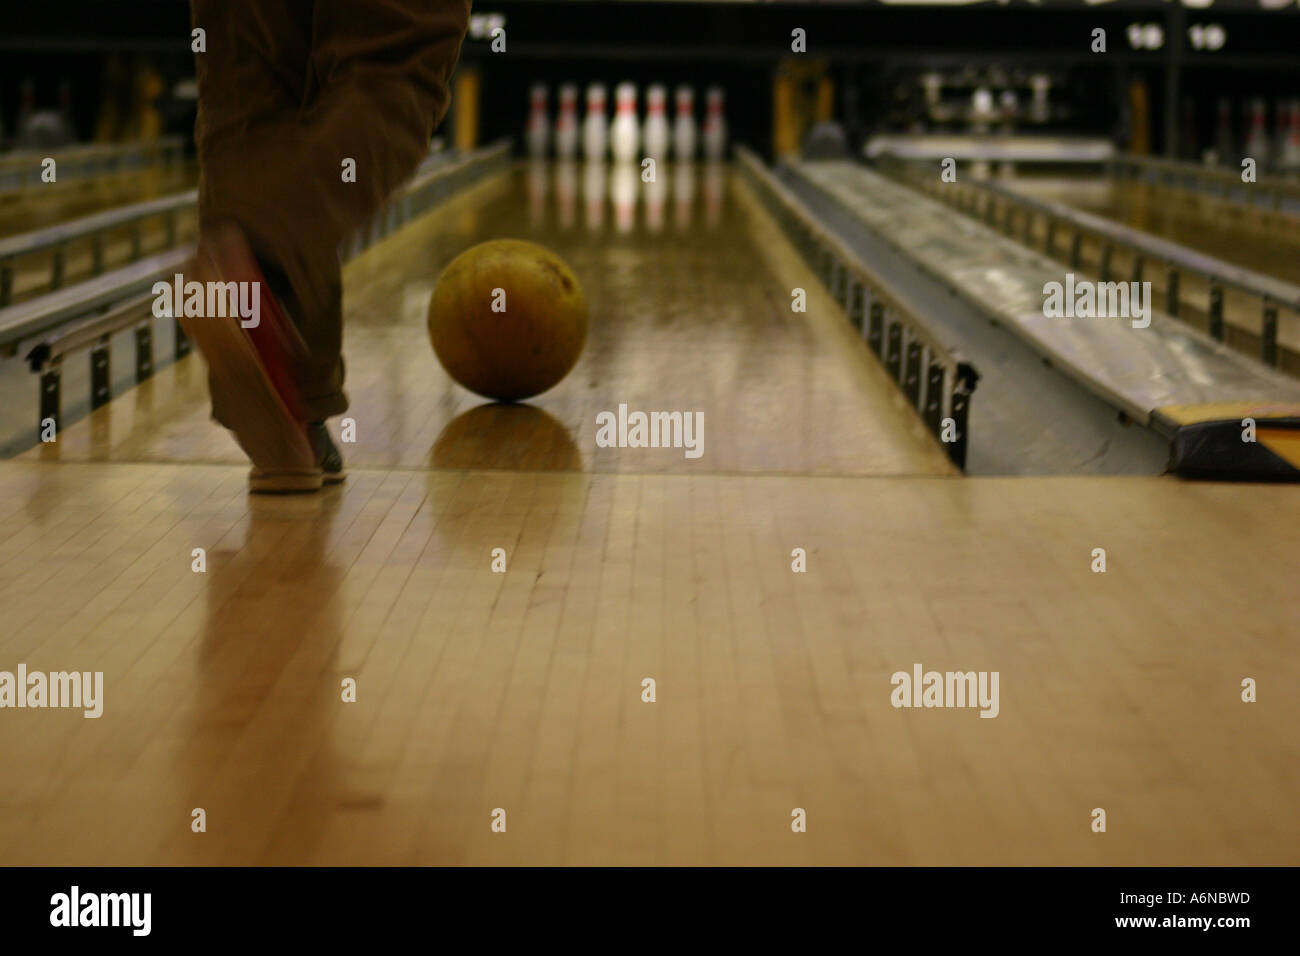 Bowling Alley Uk Stock Photos & Bowling Alley Uk Stock Images - Alamy